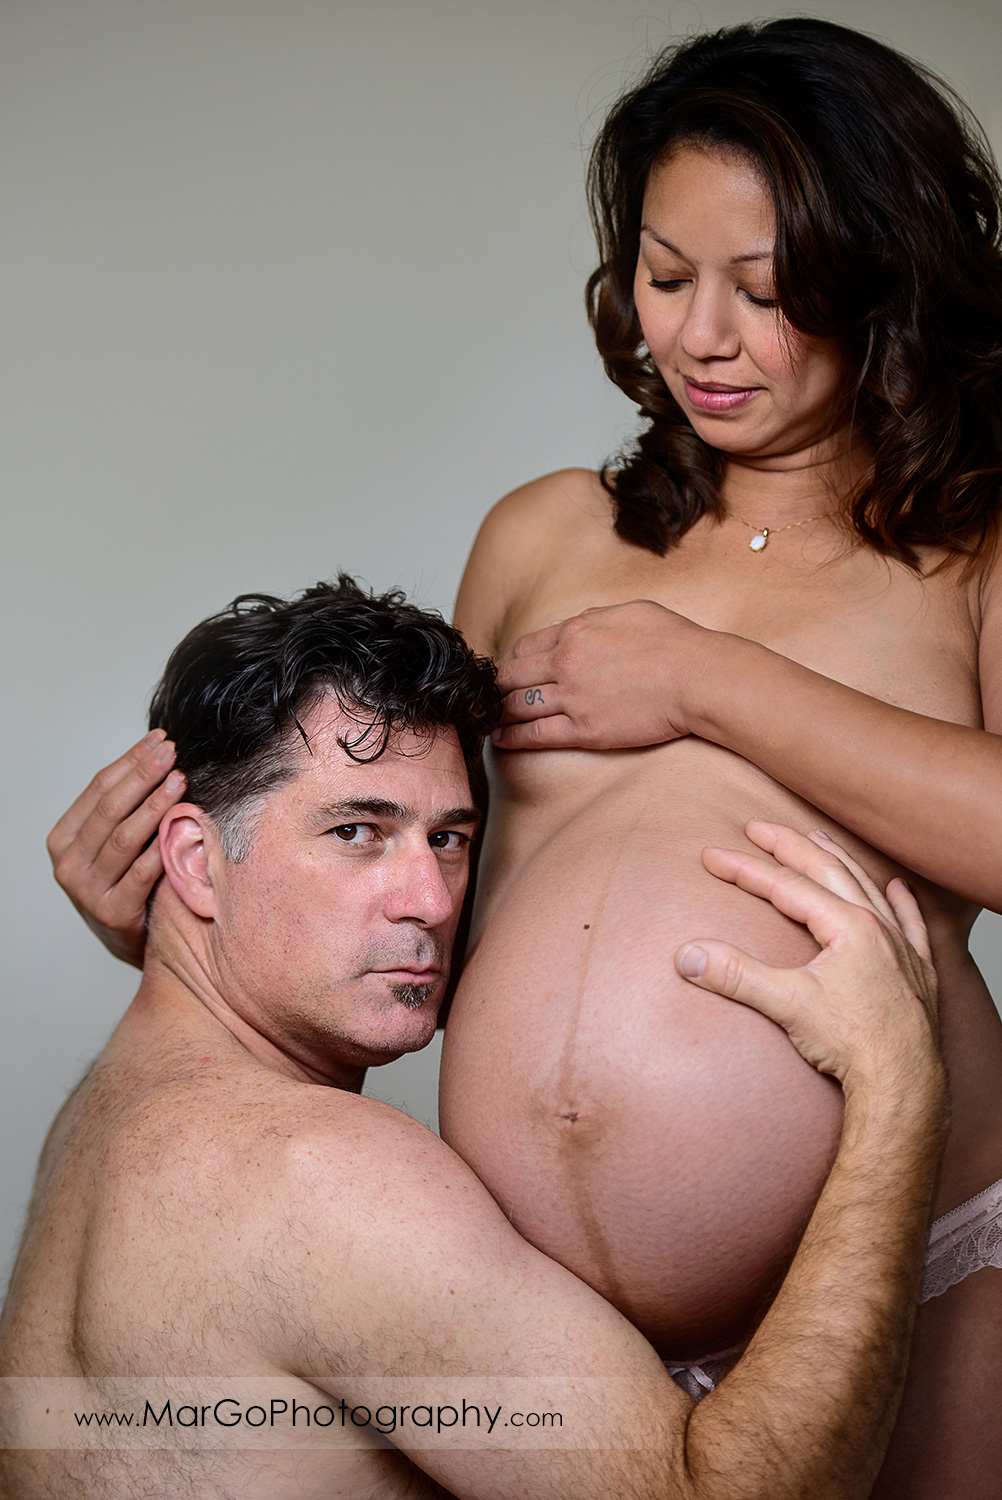 naked man holding pregnant woman belly and looking into camera